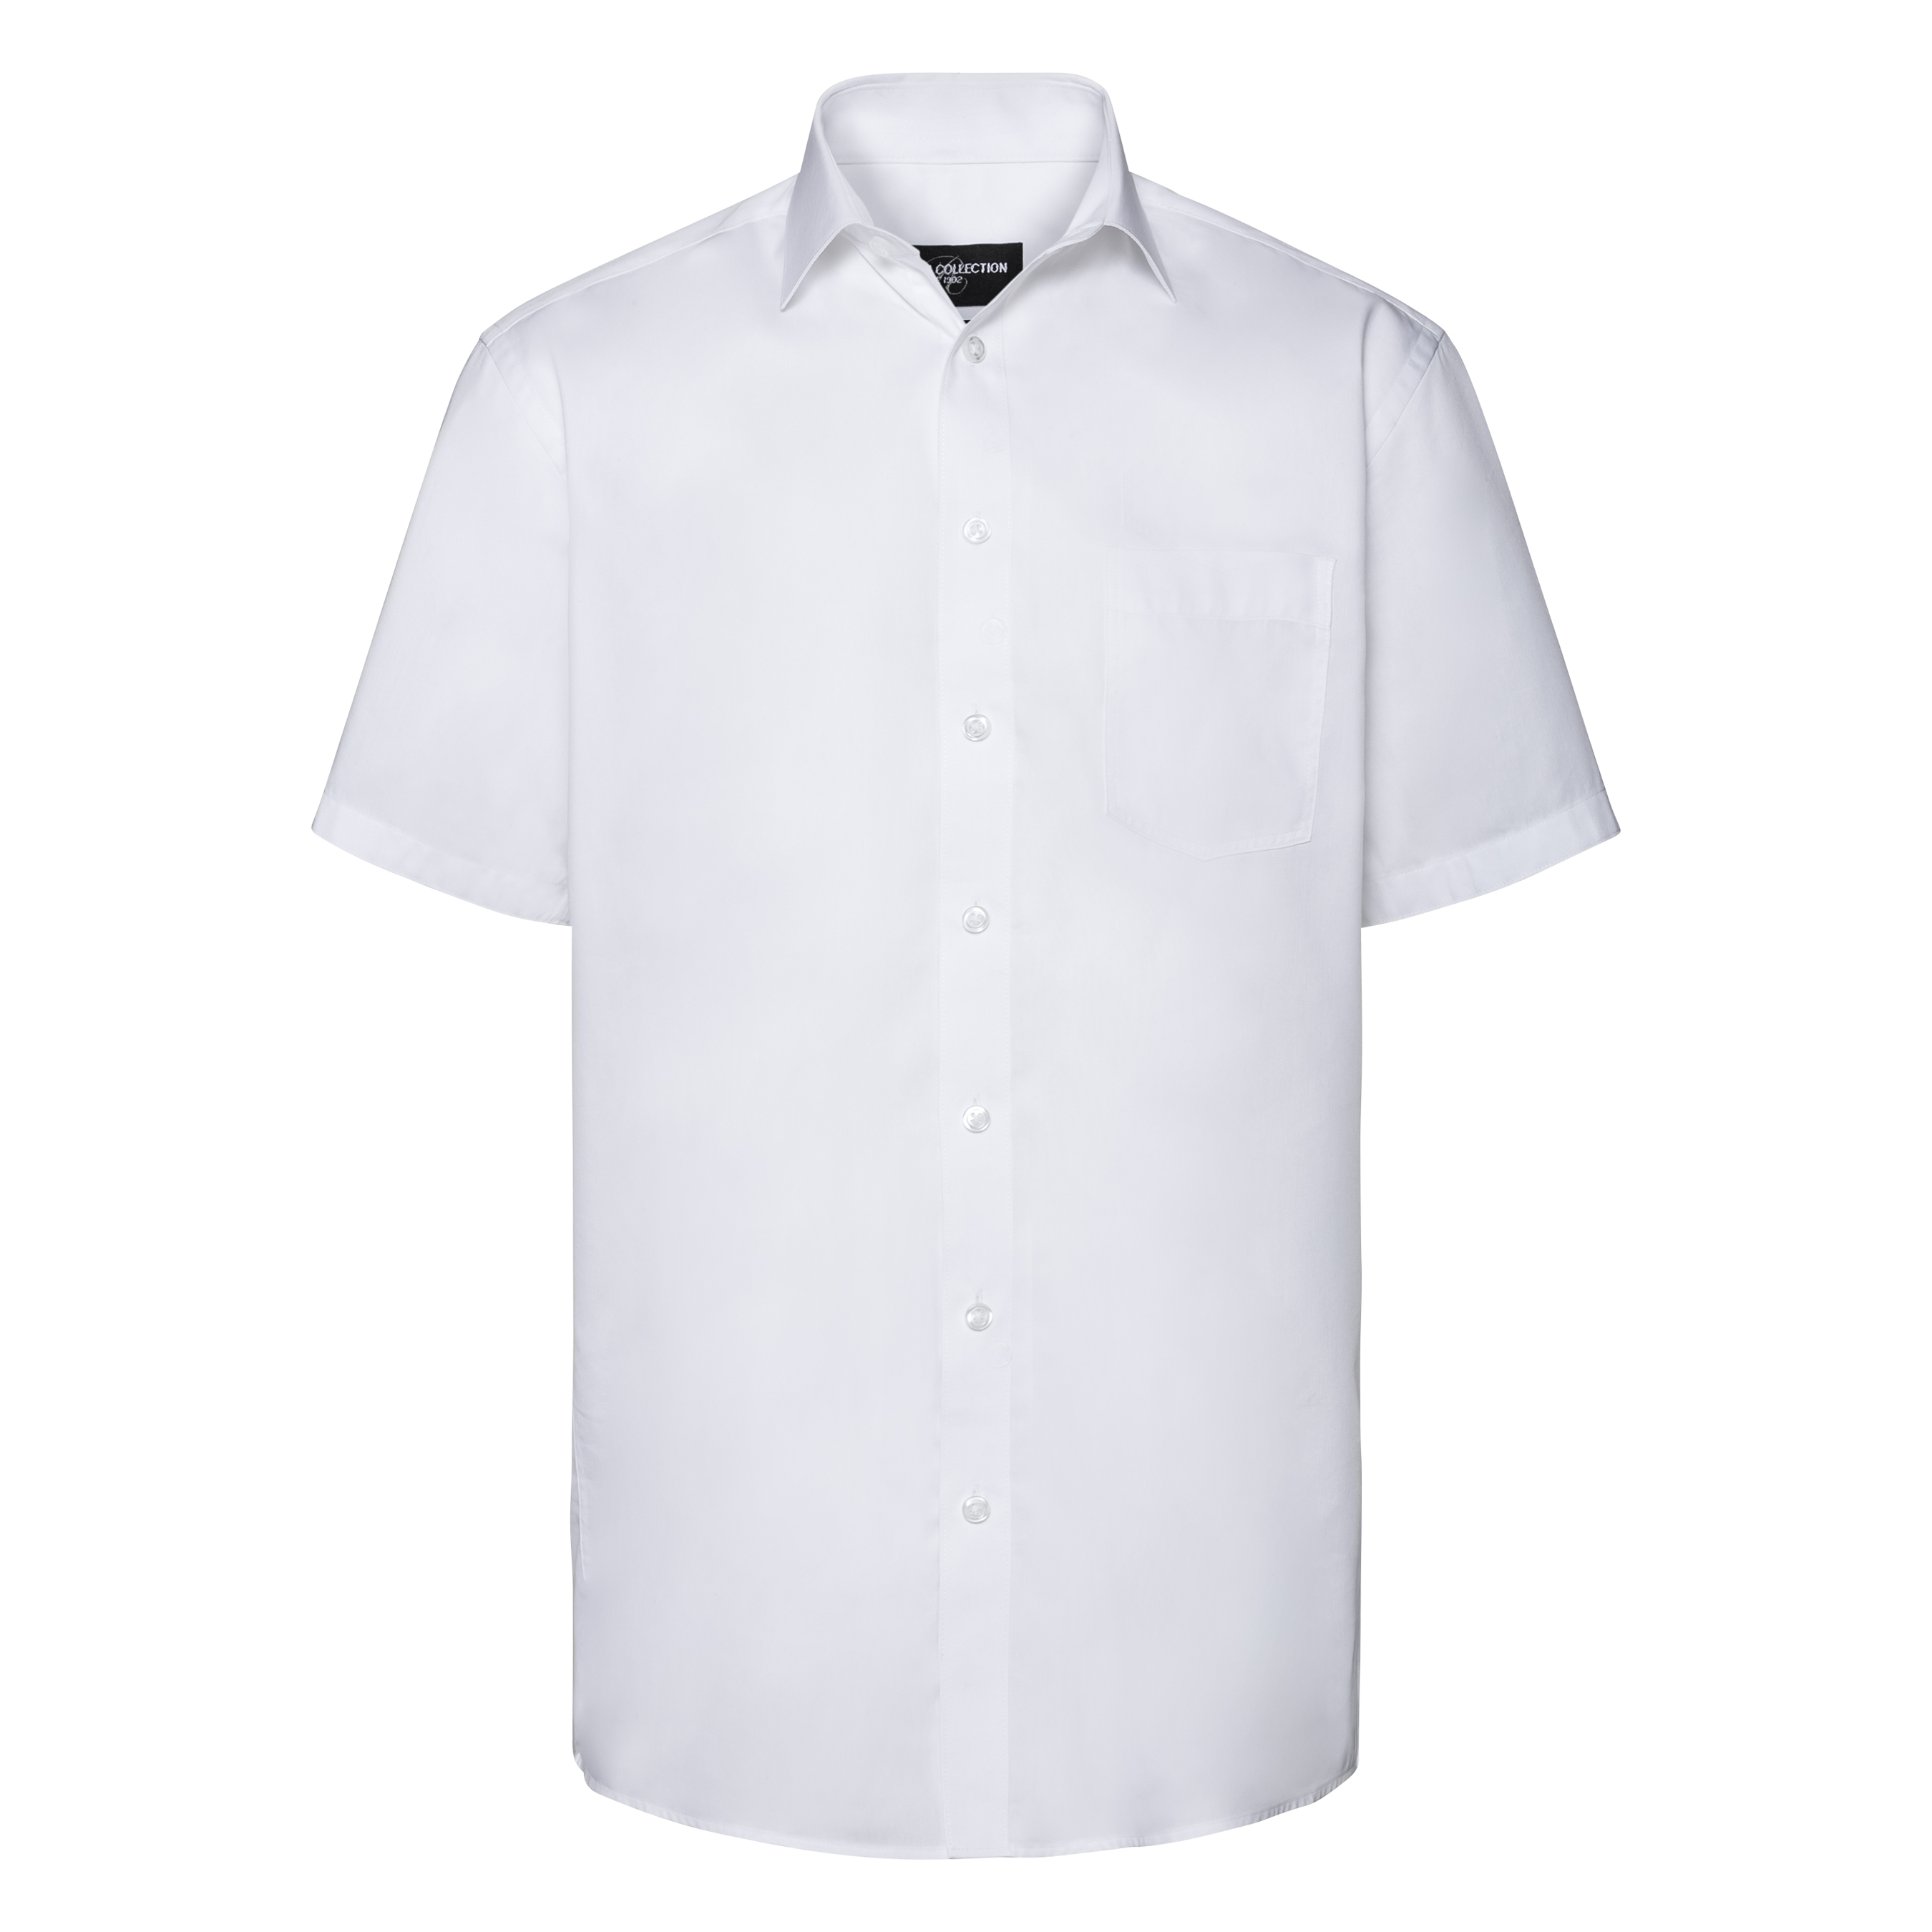 Russell Collection Mens Short Sleeve Tailored Coolmax Shirt (4XL) (White)